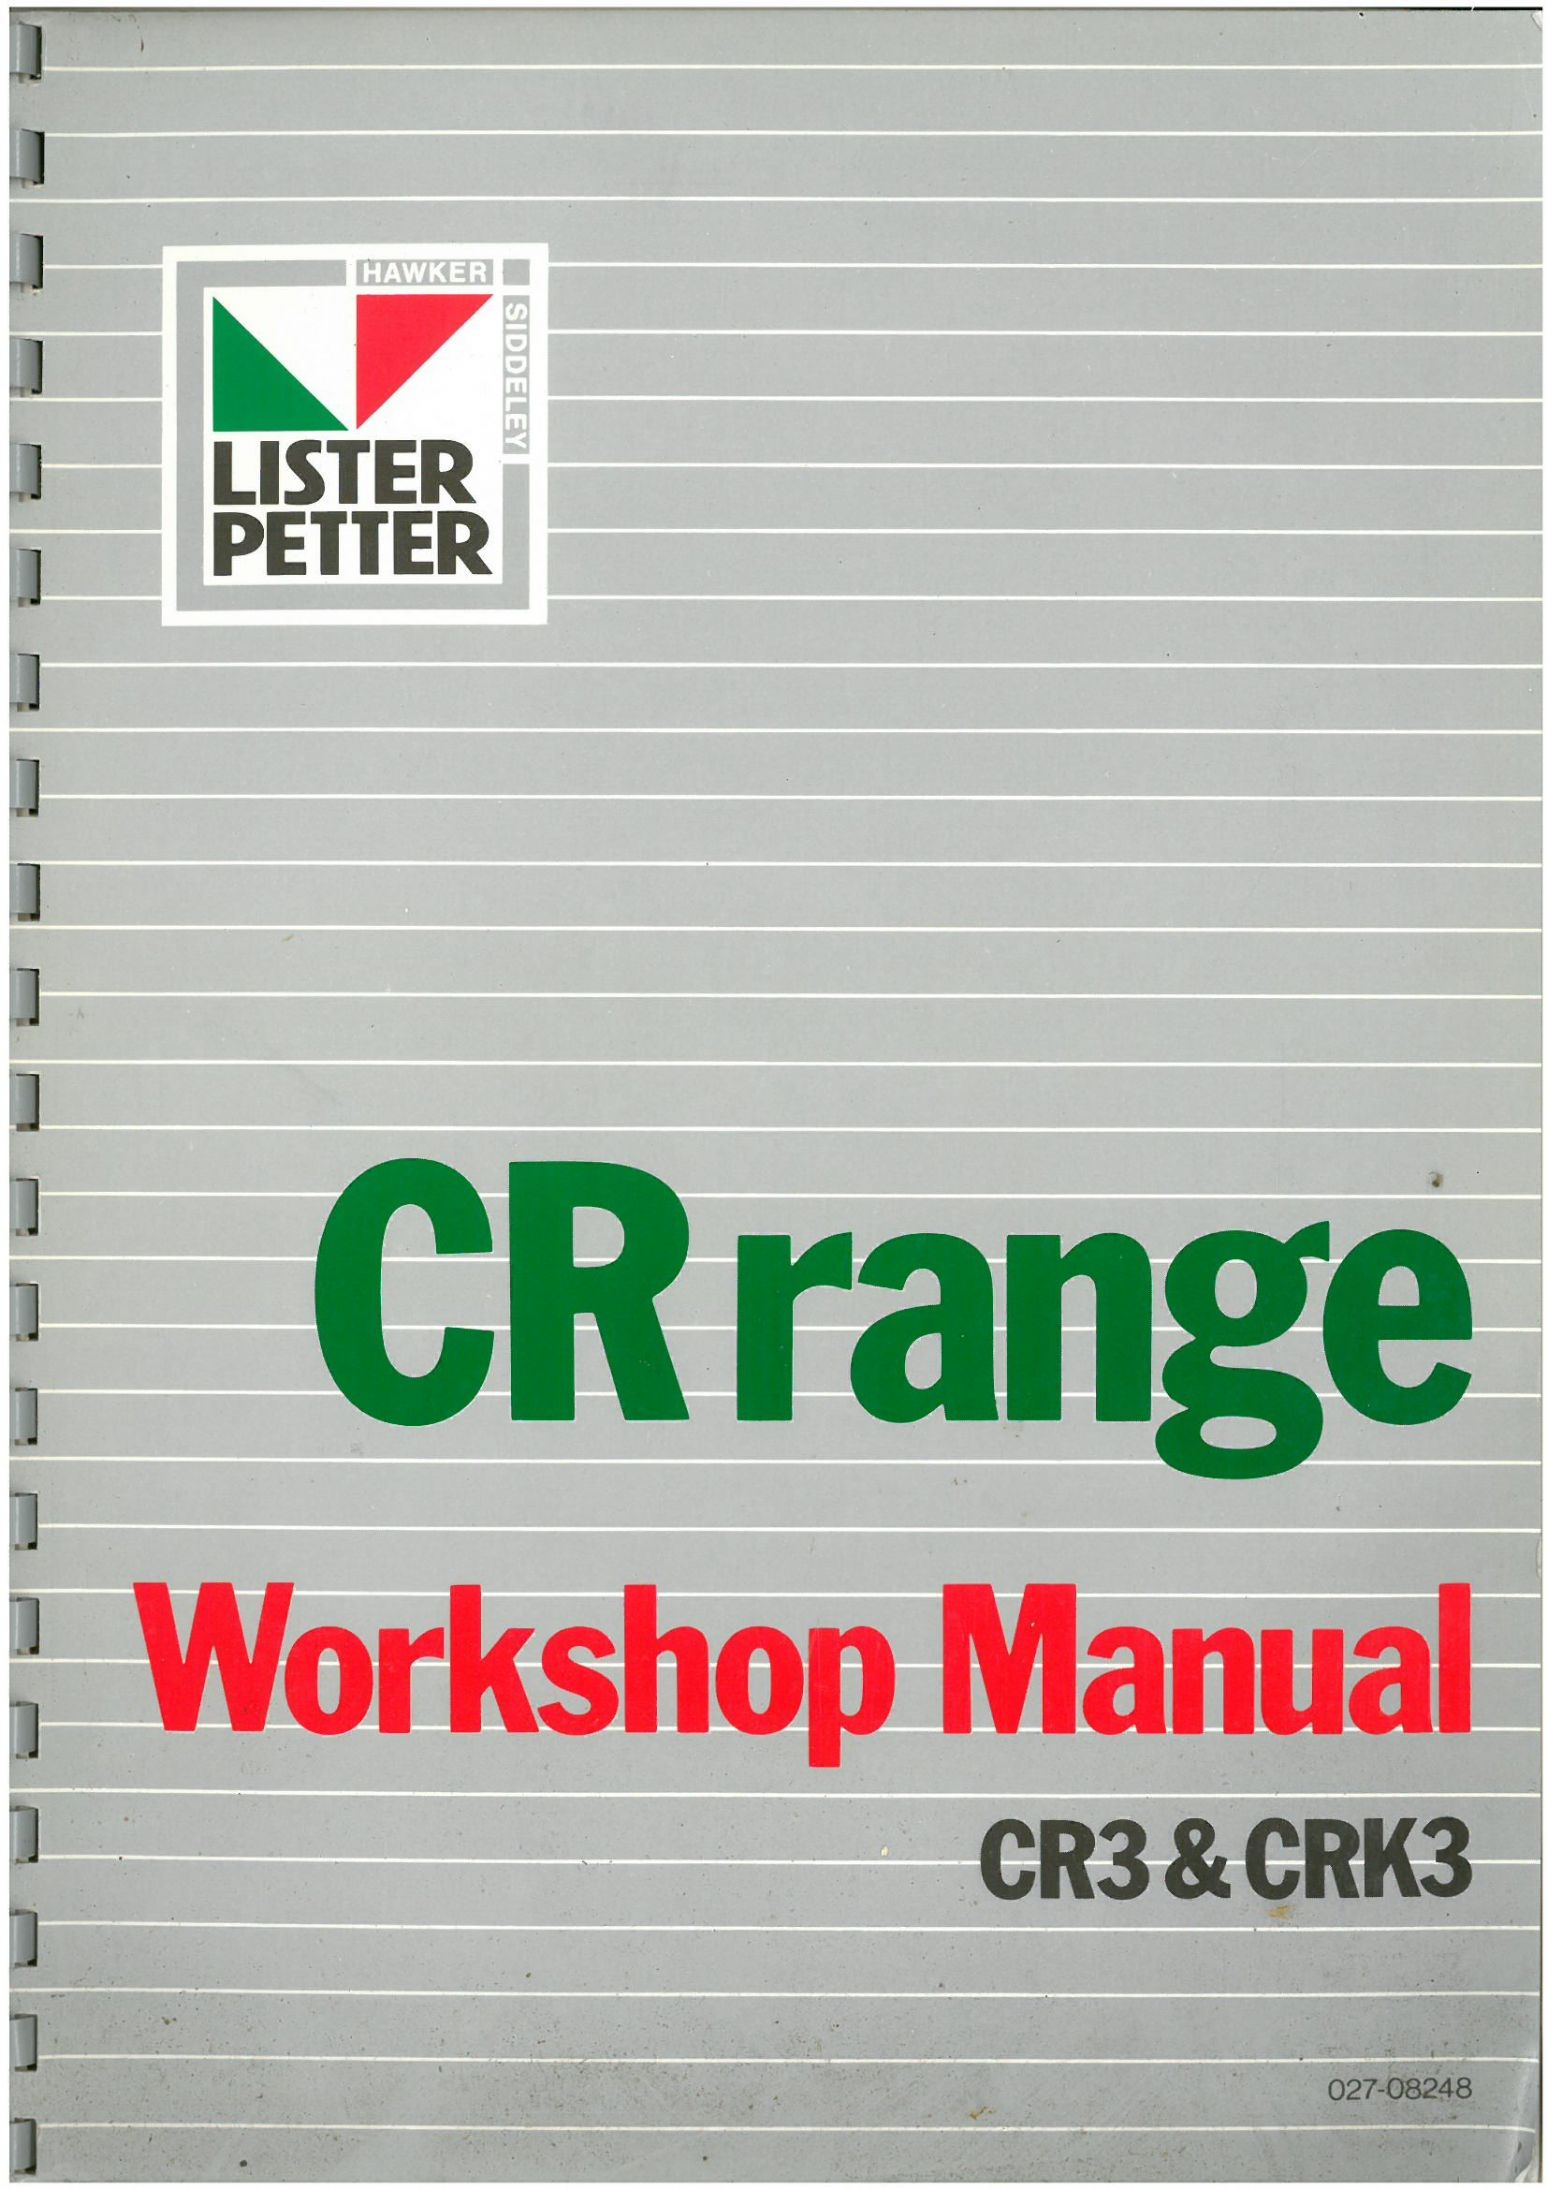 Lister petter service manual